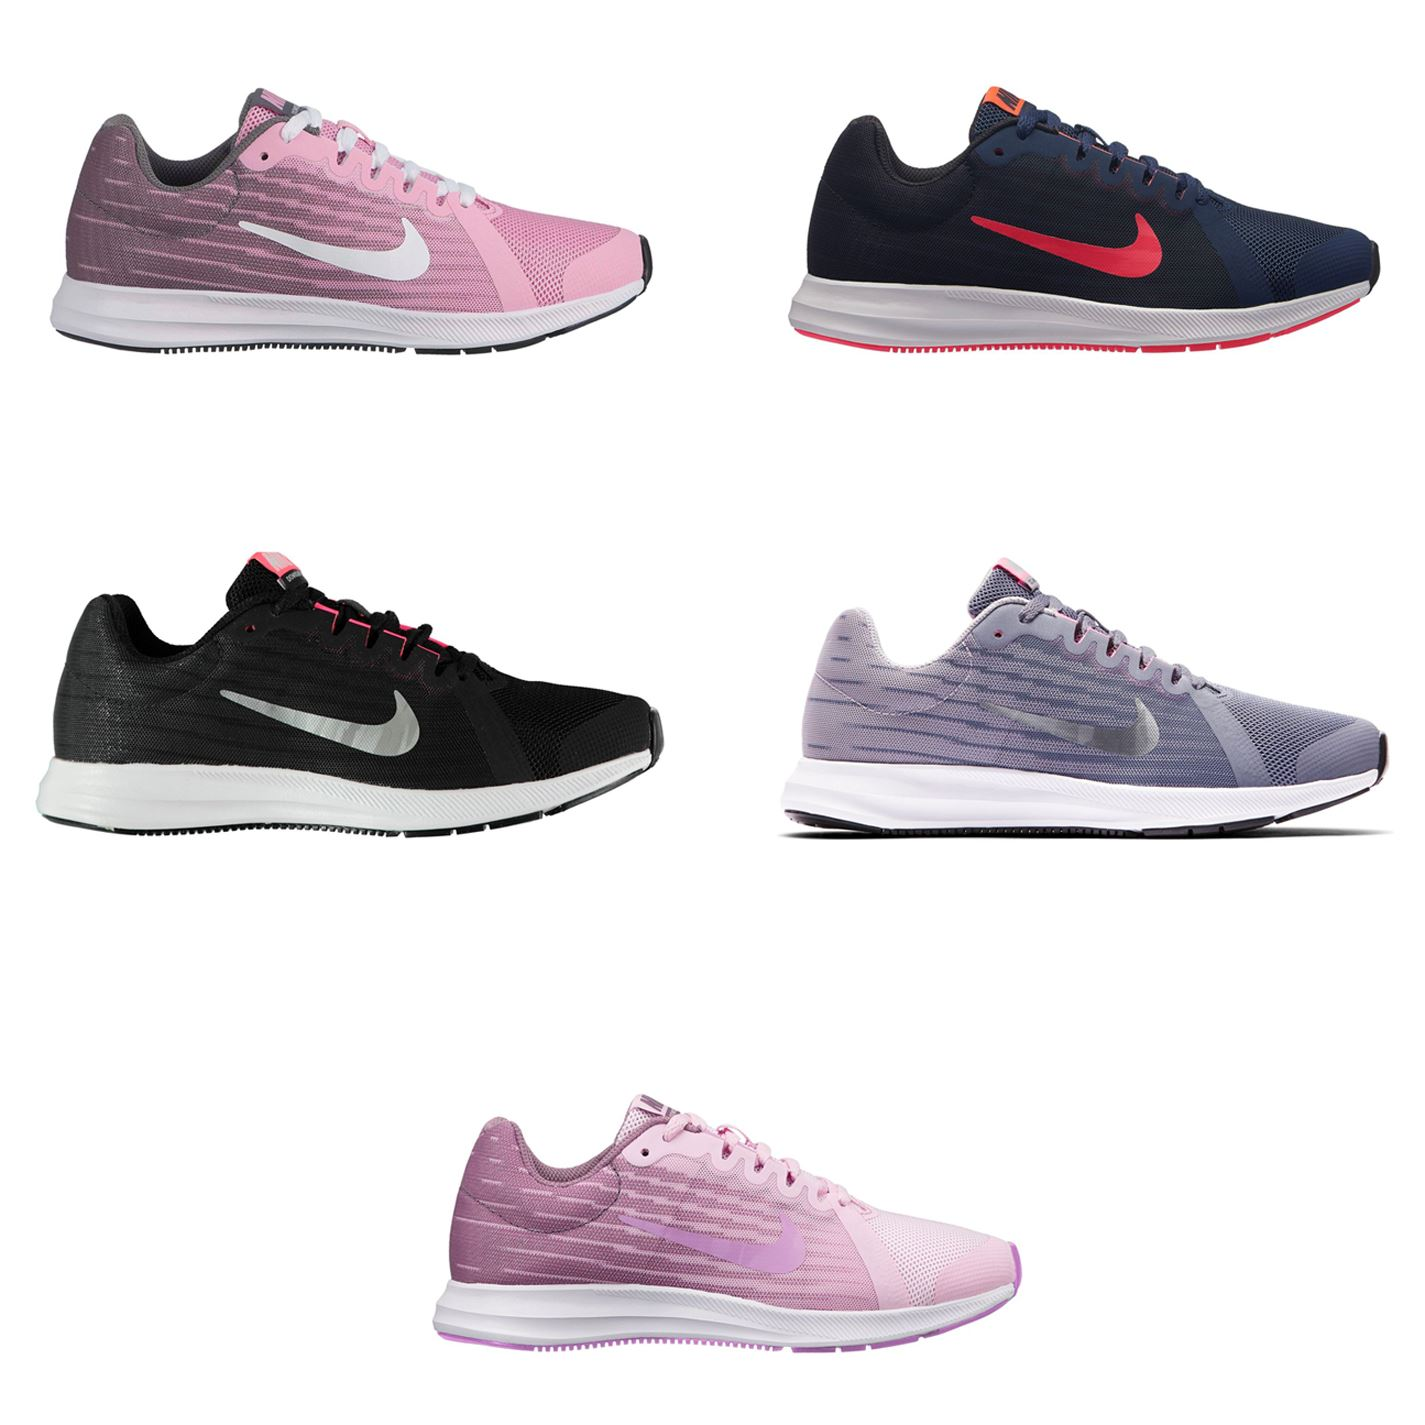 4a801581ad5d ... Nike Downshifter 8 Running Shoe Junior Girls Trainers Footwear ...